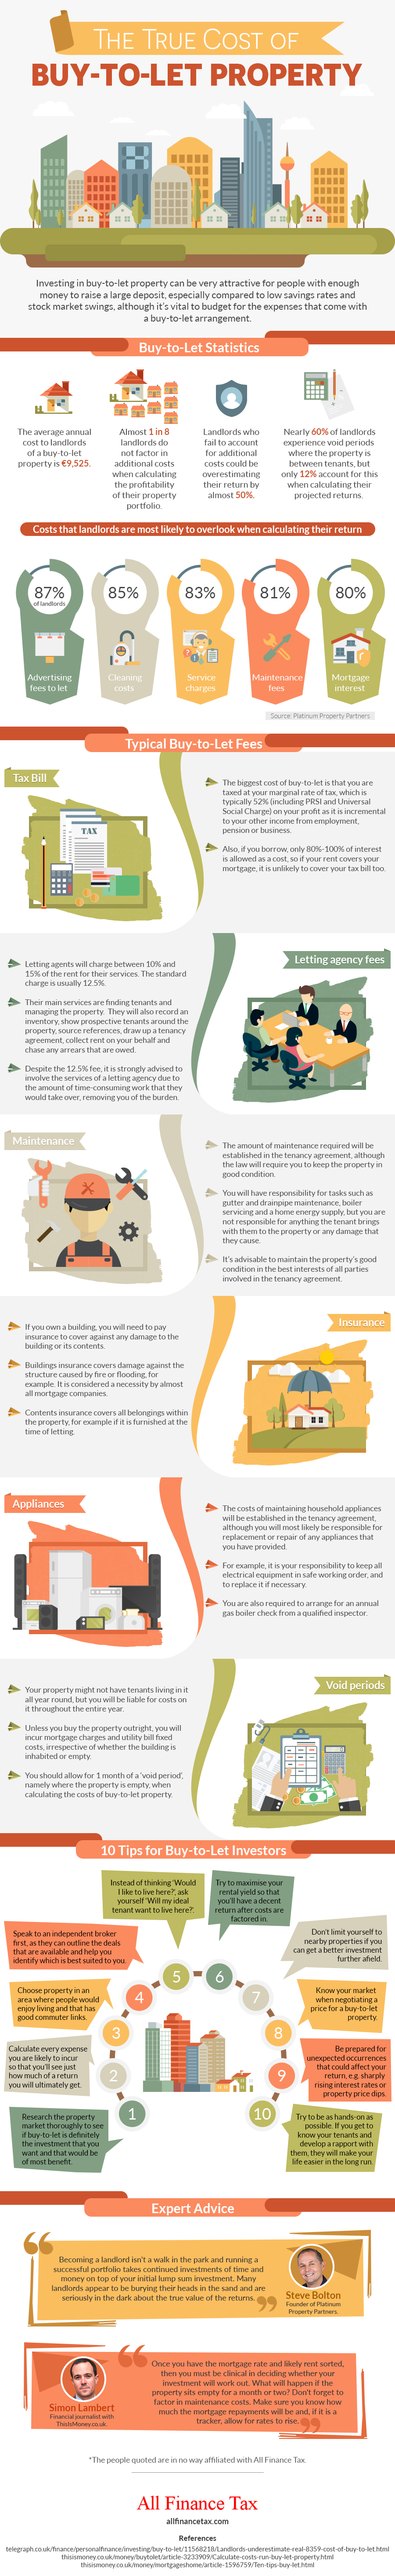 The True Cost of Buy-to-Let Property - Infographic